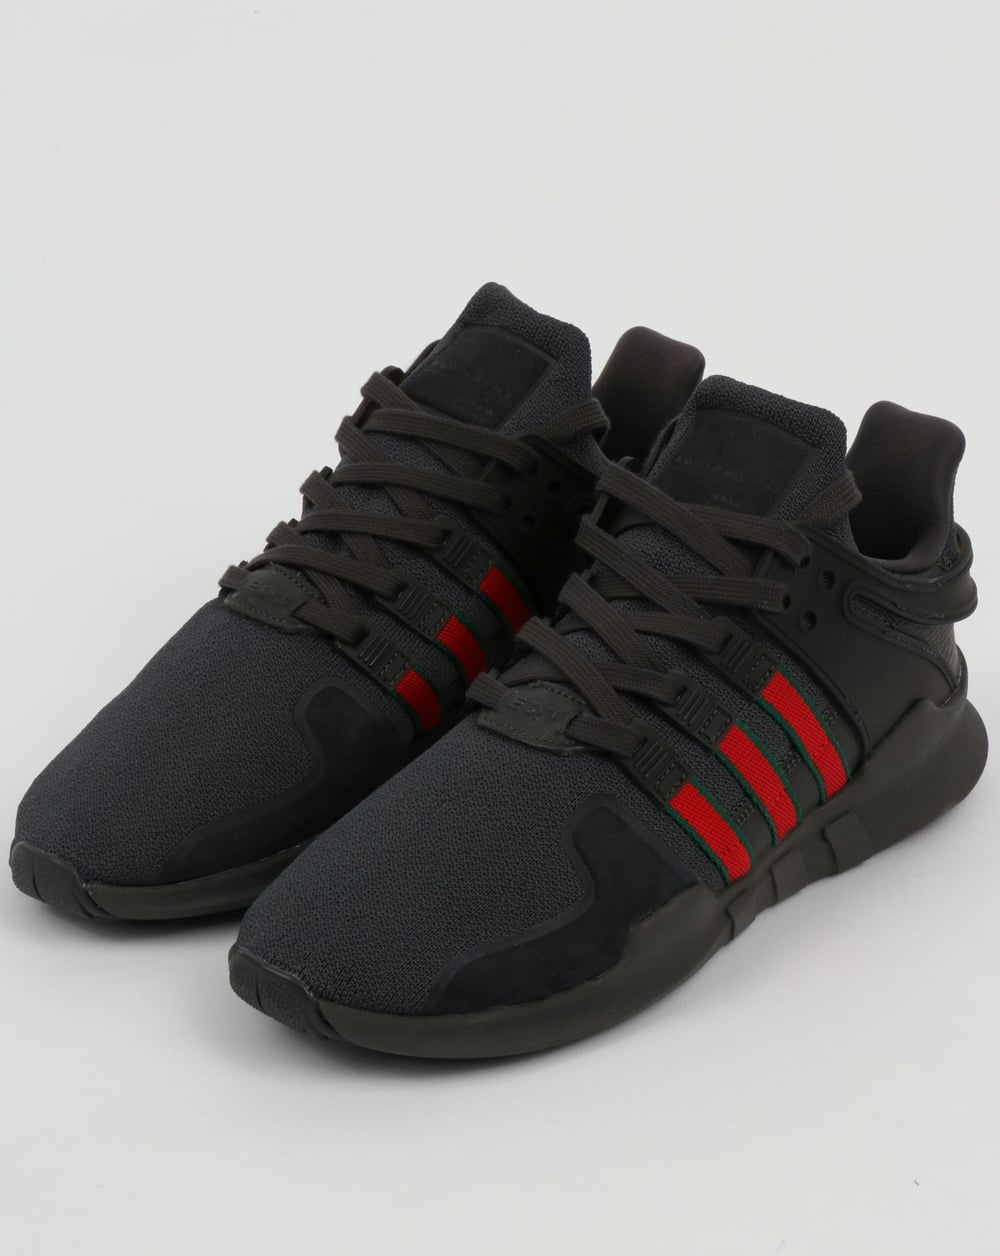 separation shoes c7642 3e206 Adidas EQT Support ADV Trainers Black/Scarlet/Green